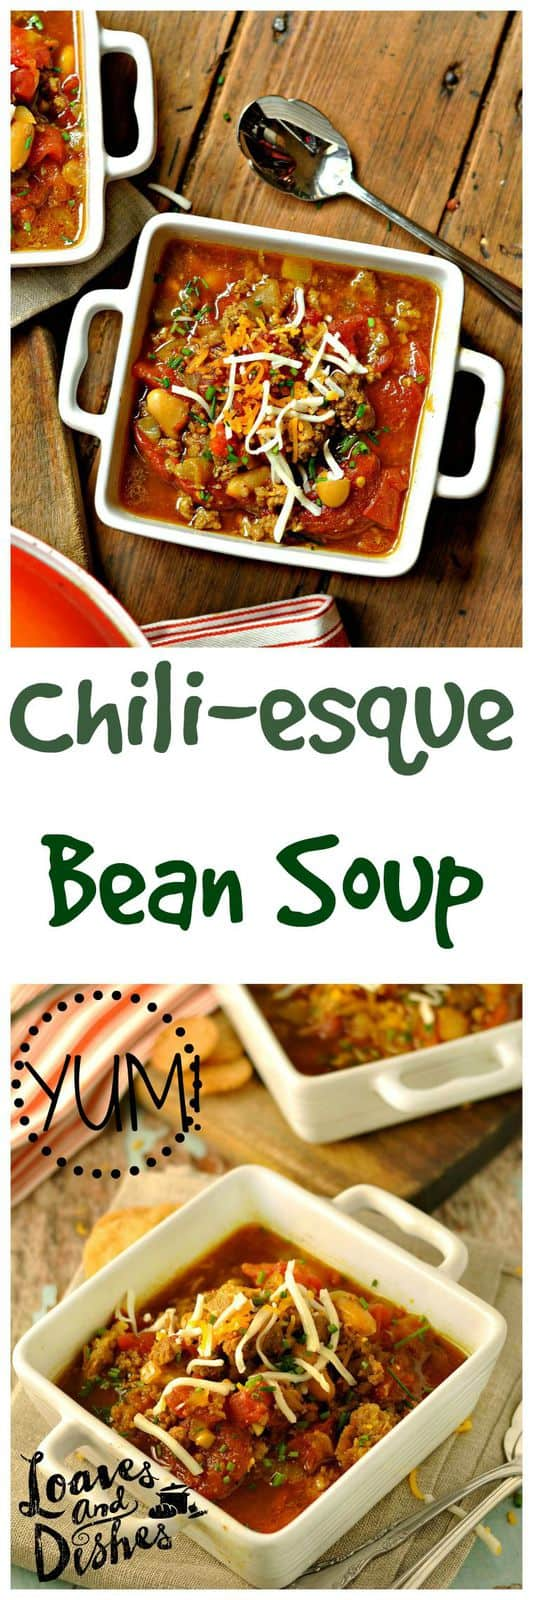 Need an AWESOME chili recipe? Thought so! Try this one! GIVEAWAY also. www.loavesanddishes.net